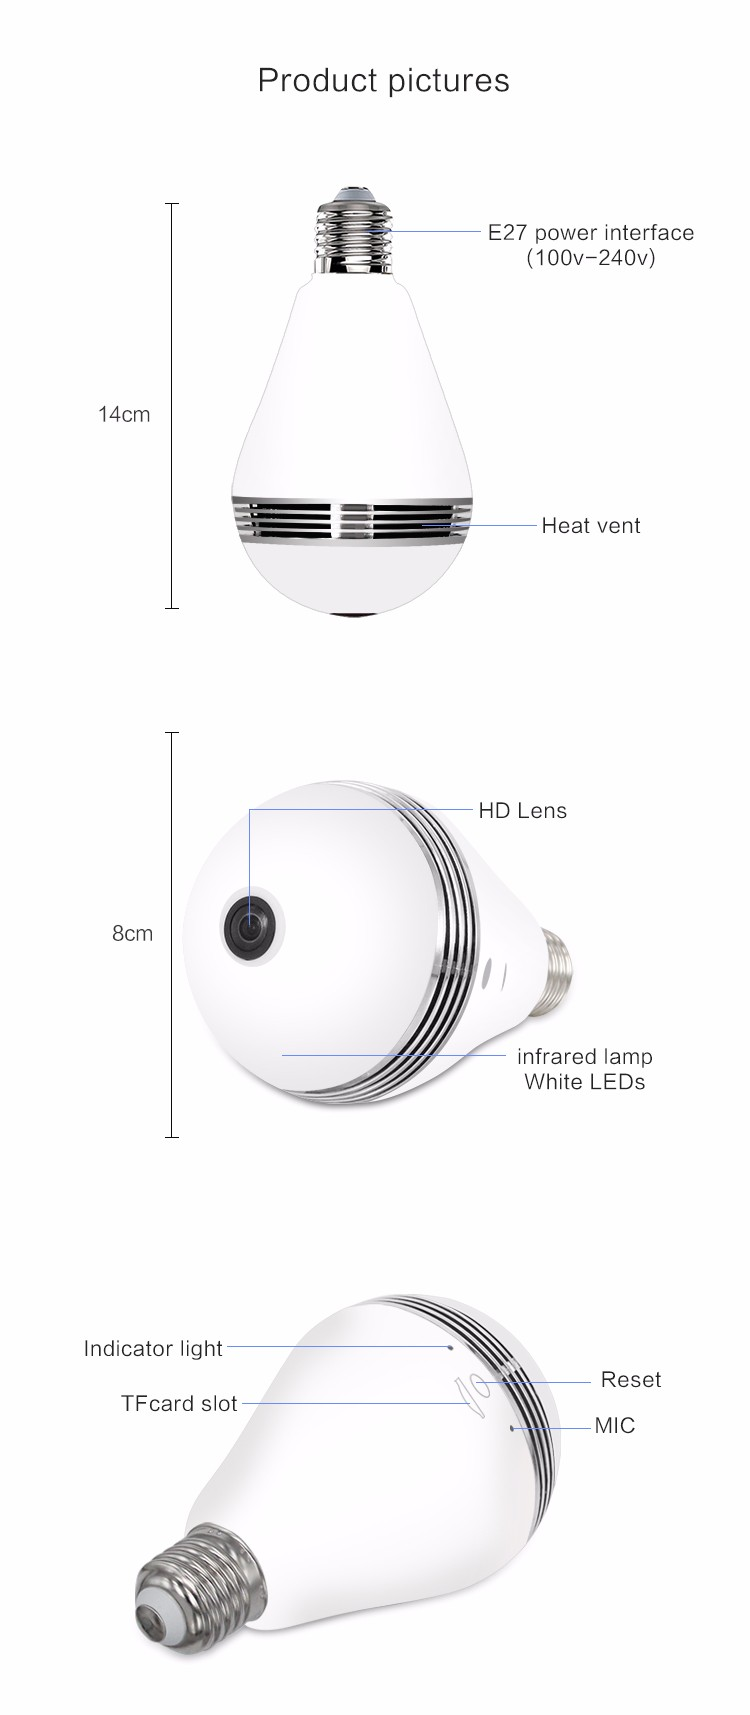 Wireless p2p IP Wifi Light Bulb Camera XMR-JK43